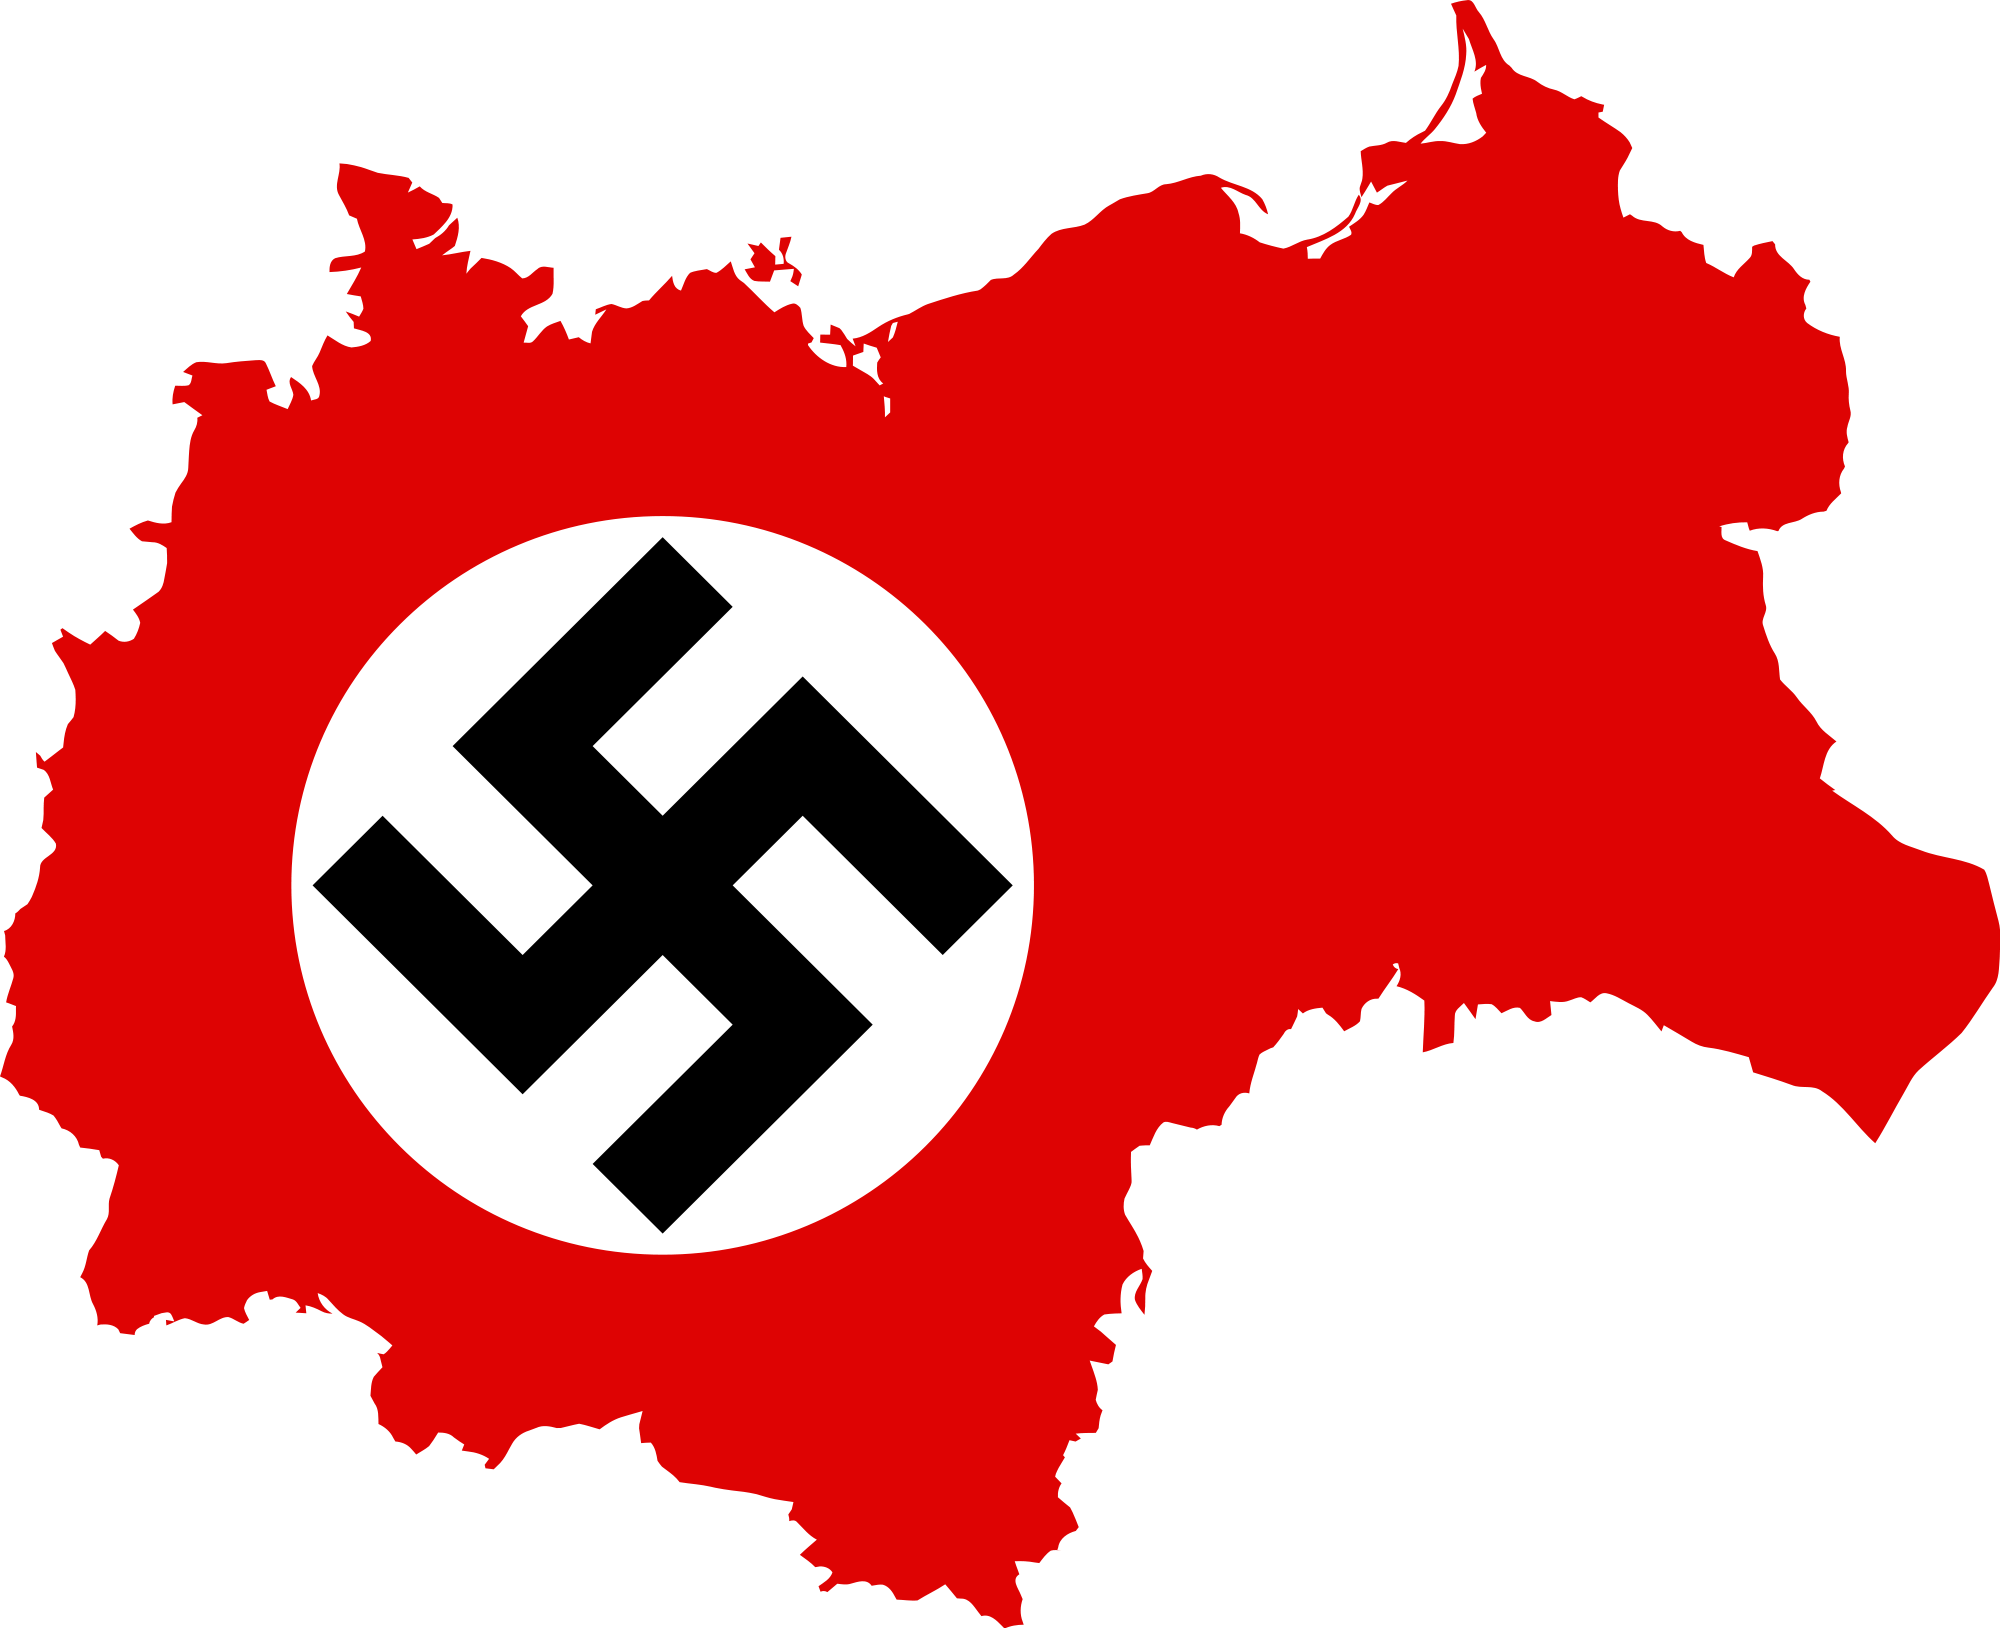 Germany clipart map 1933. File flag of svg